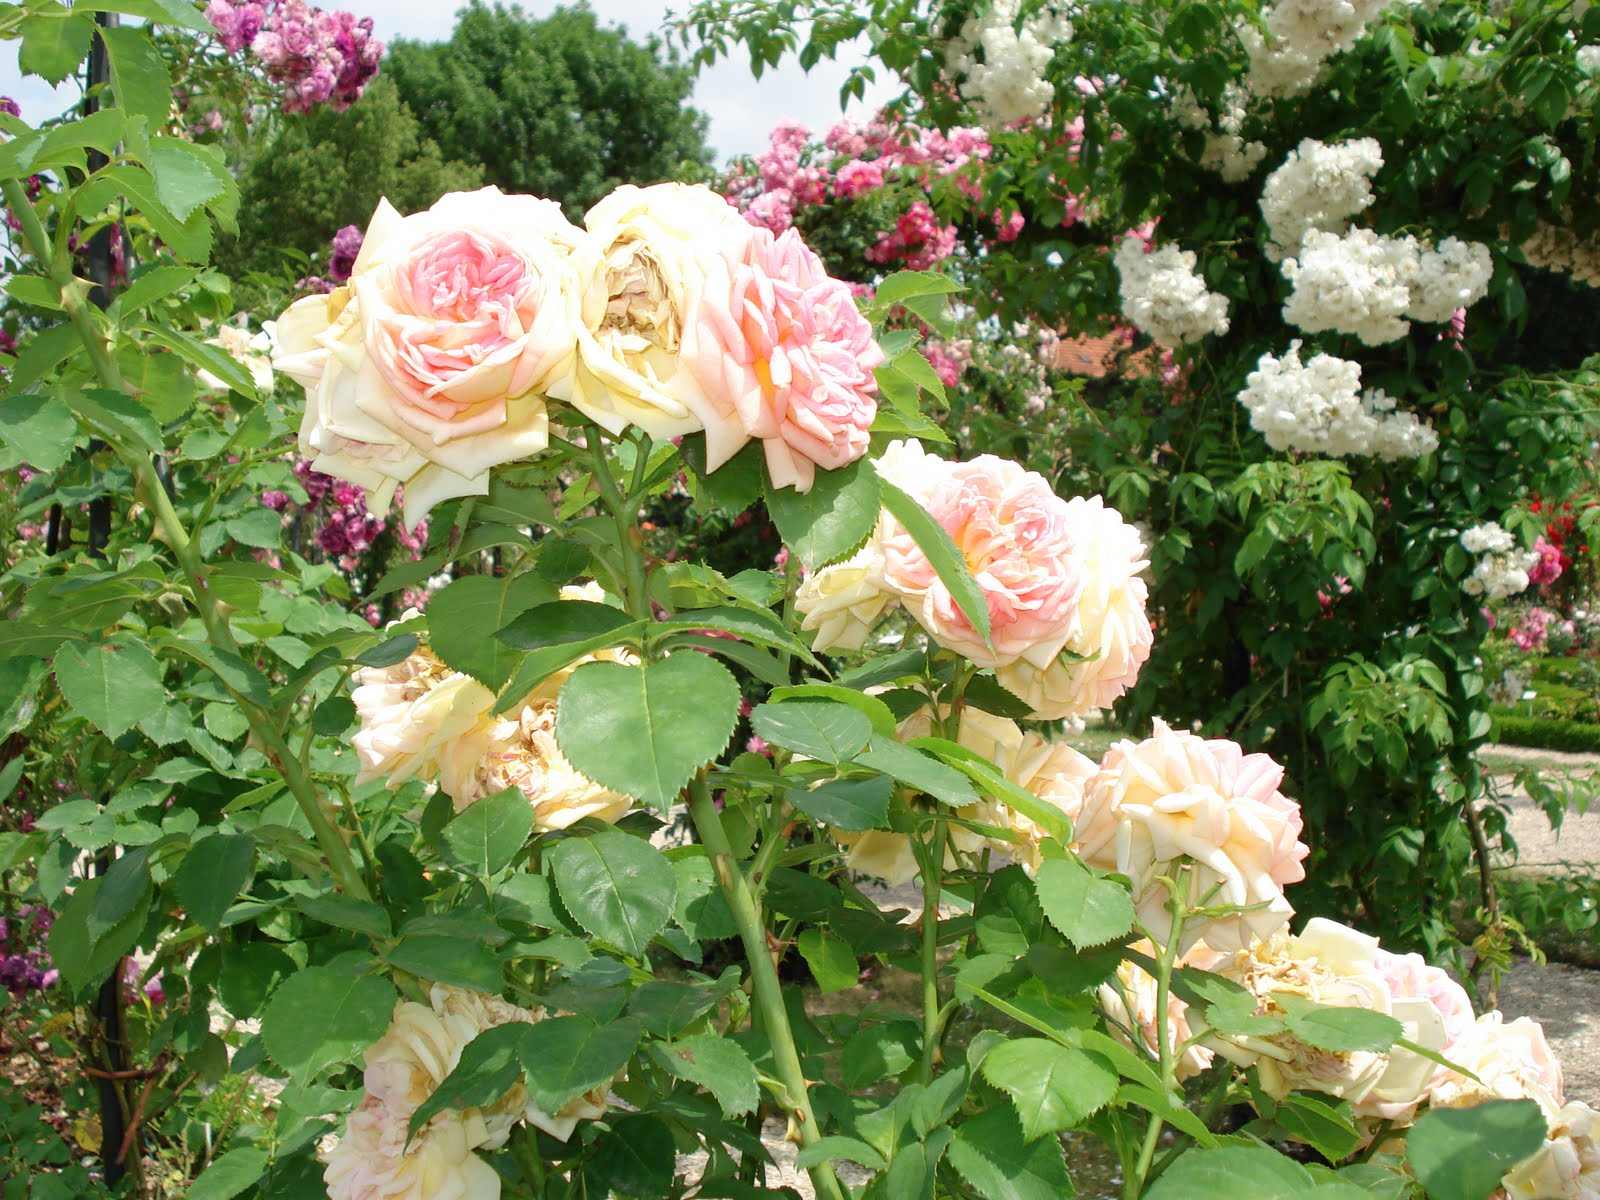 Roses In Garden: French Beauty Mark: The Rose Garden At L'Hay-les-Roses Paris